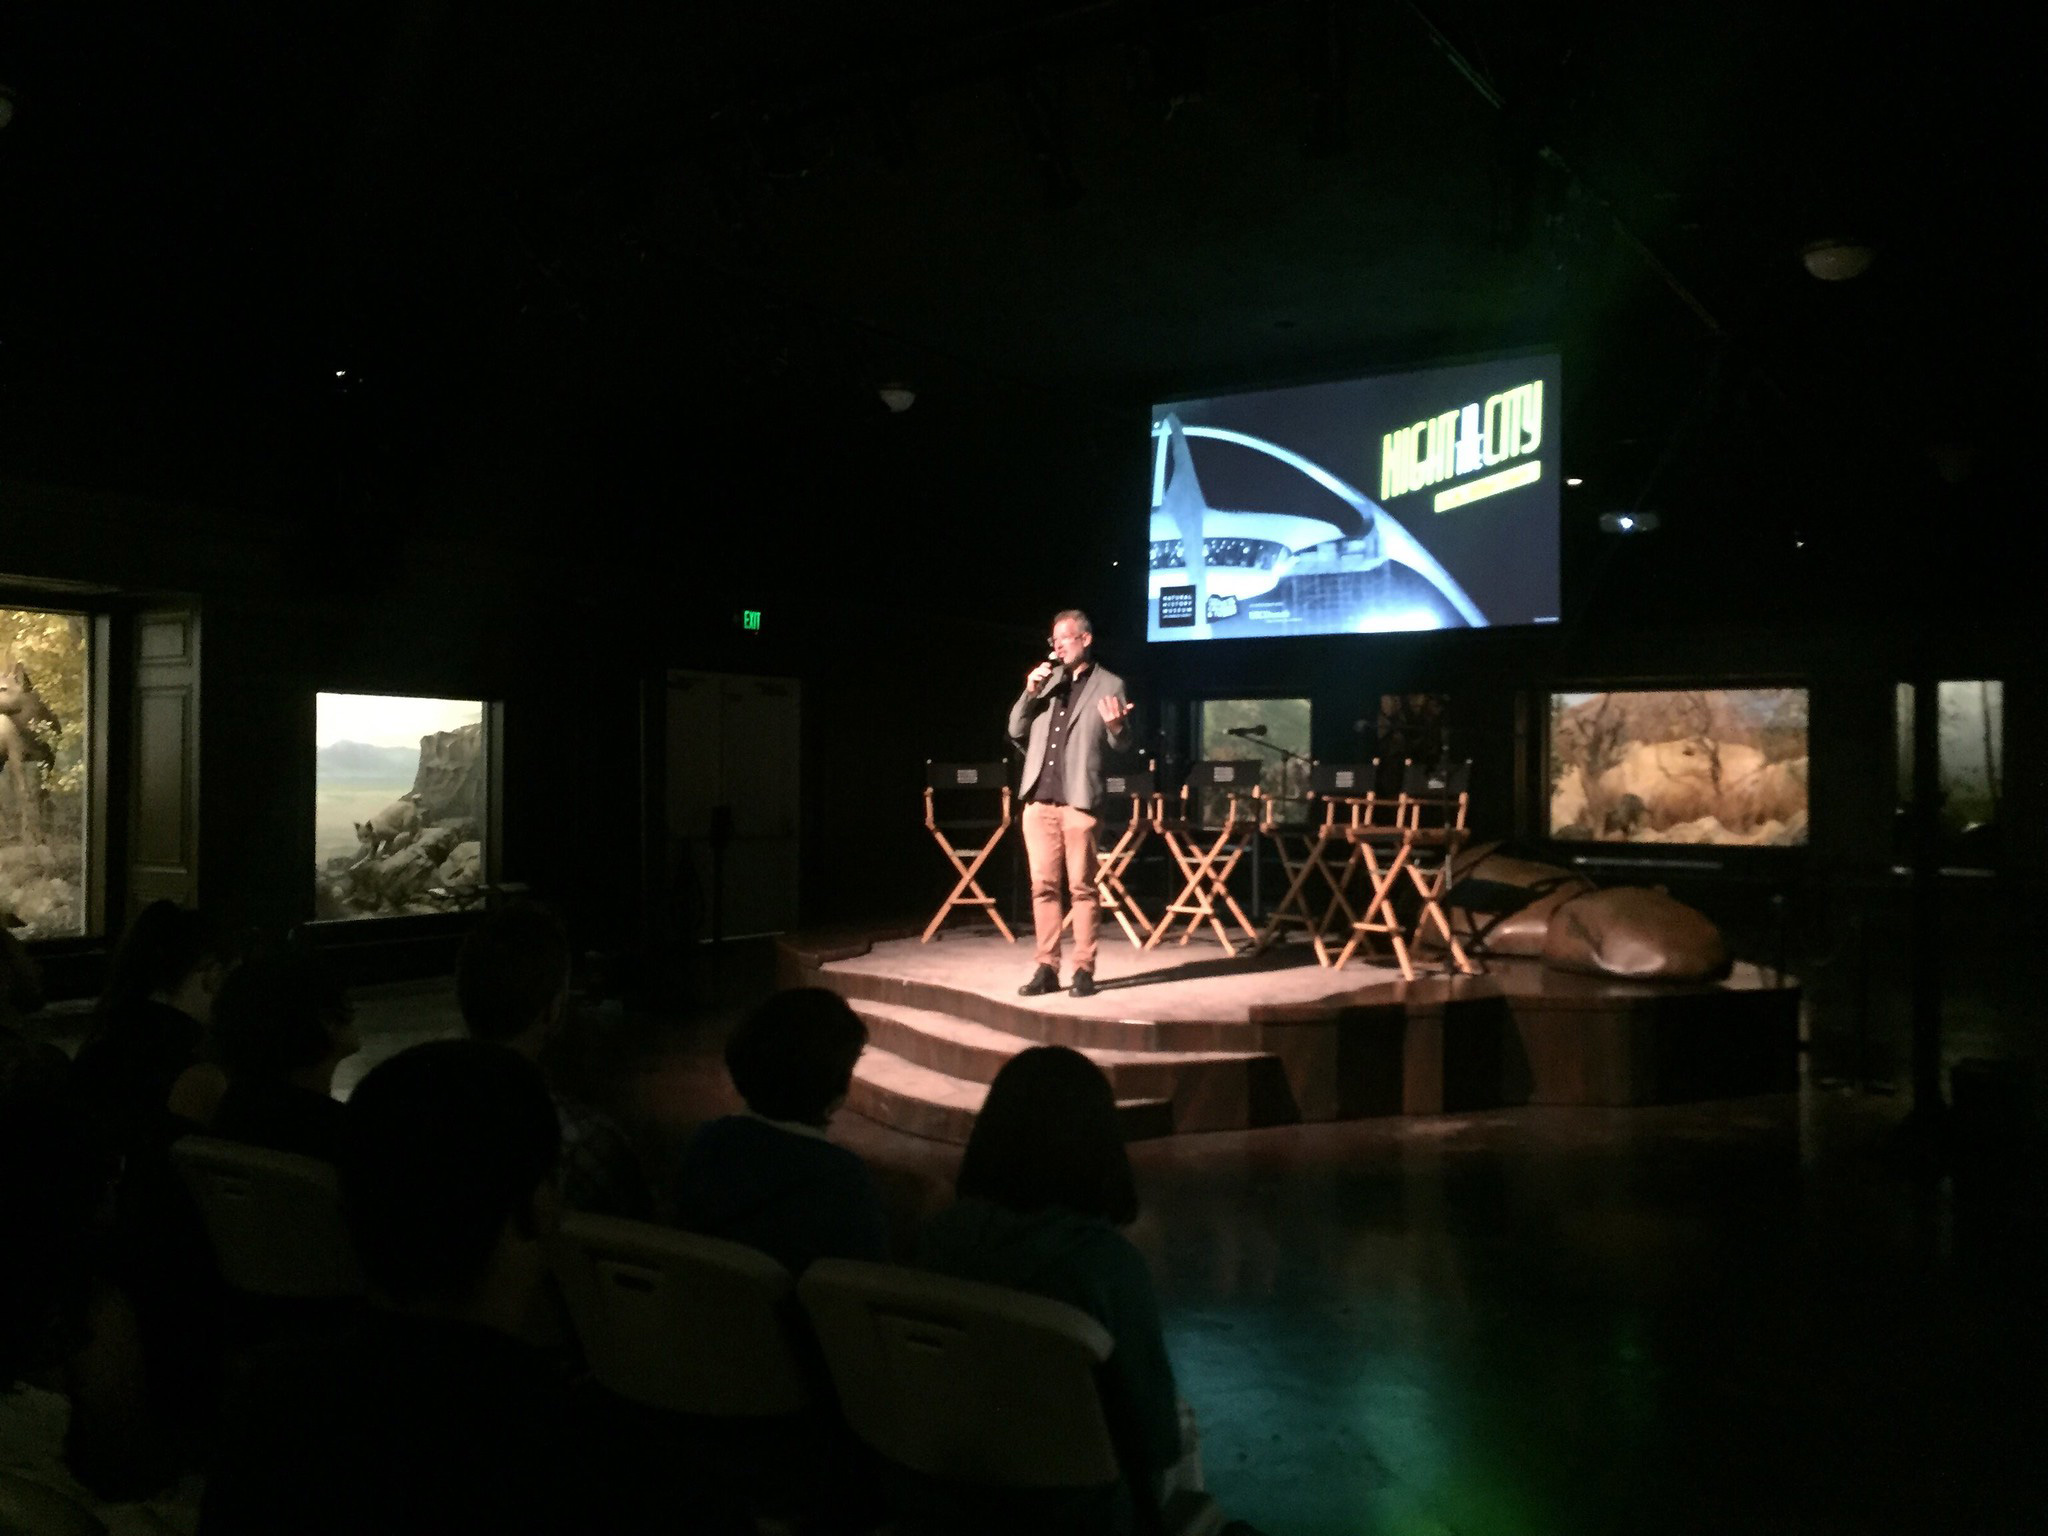 NIGHTSHIFT director, David Grabias, welcomes attendees to the premiere at the Natural History Museum on October 15, 2019.